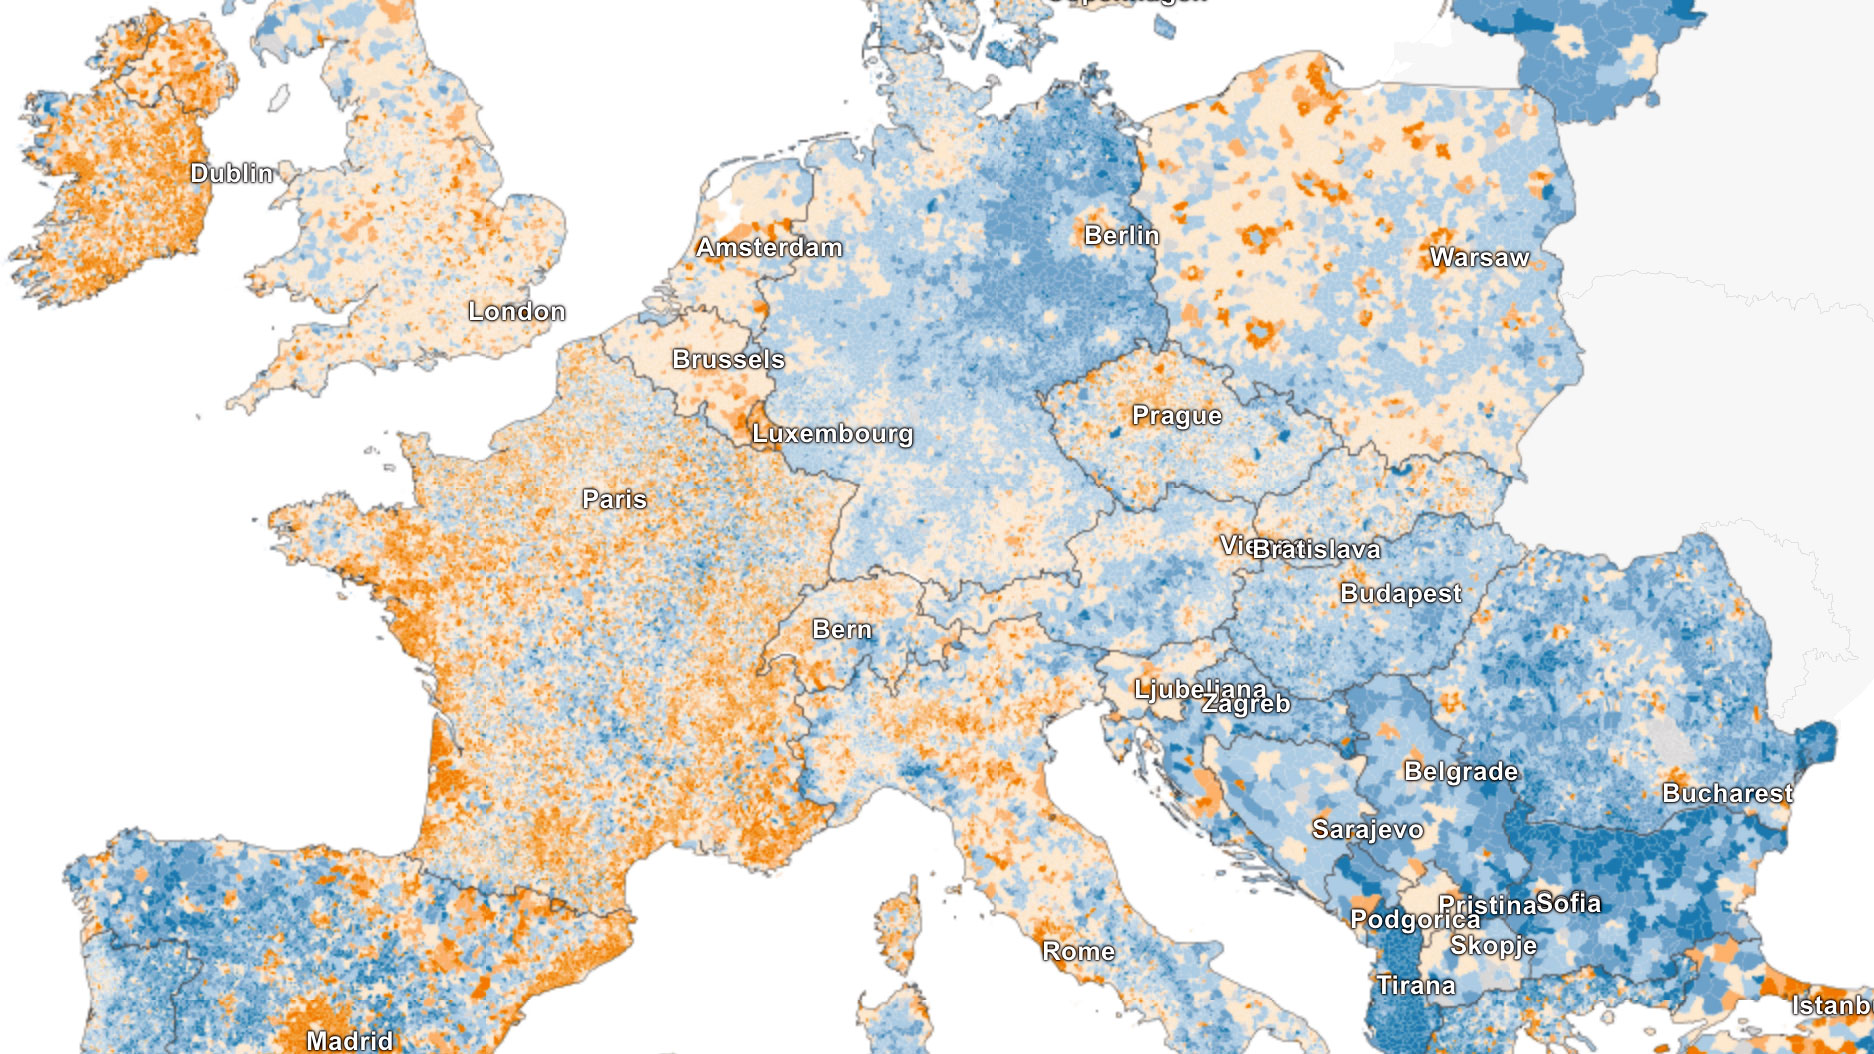 2015 Map Of Europe.Map Of European Population Growth And Decline Boing Boing